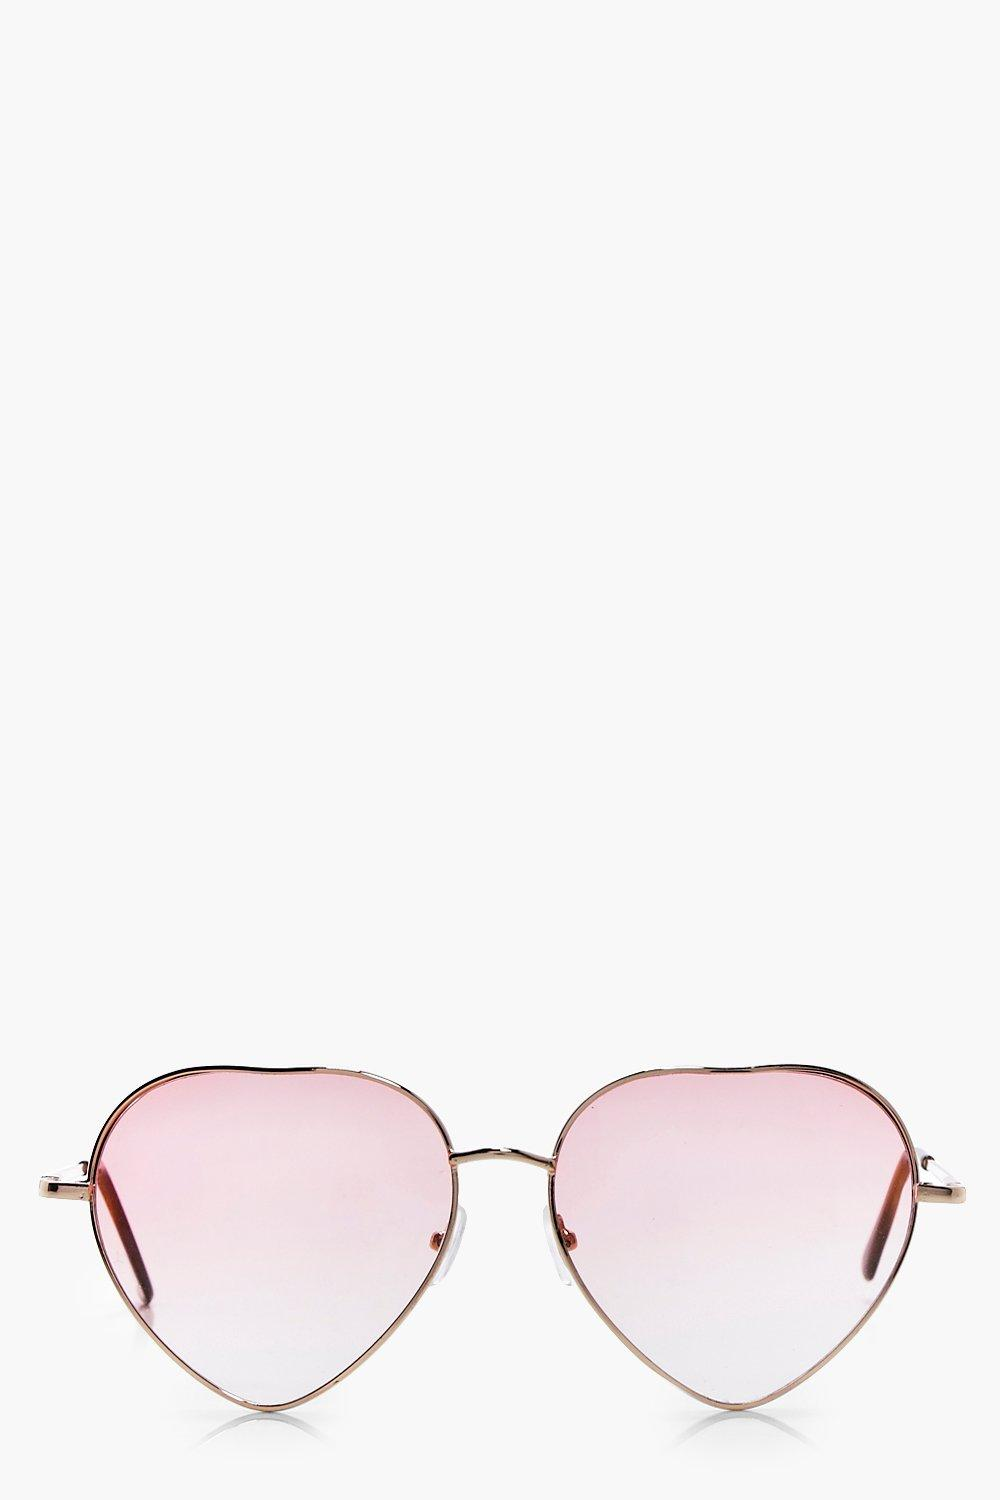 1960s Accessories Alice Pink Ombre Lense Heart Sunglasses pink $6.00 AT vintagedancer.com